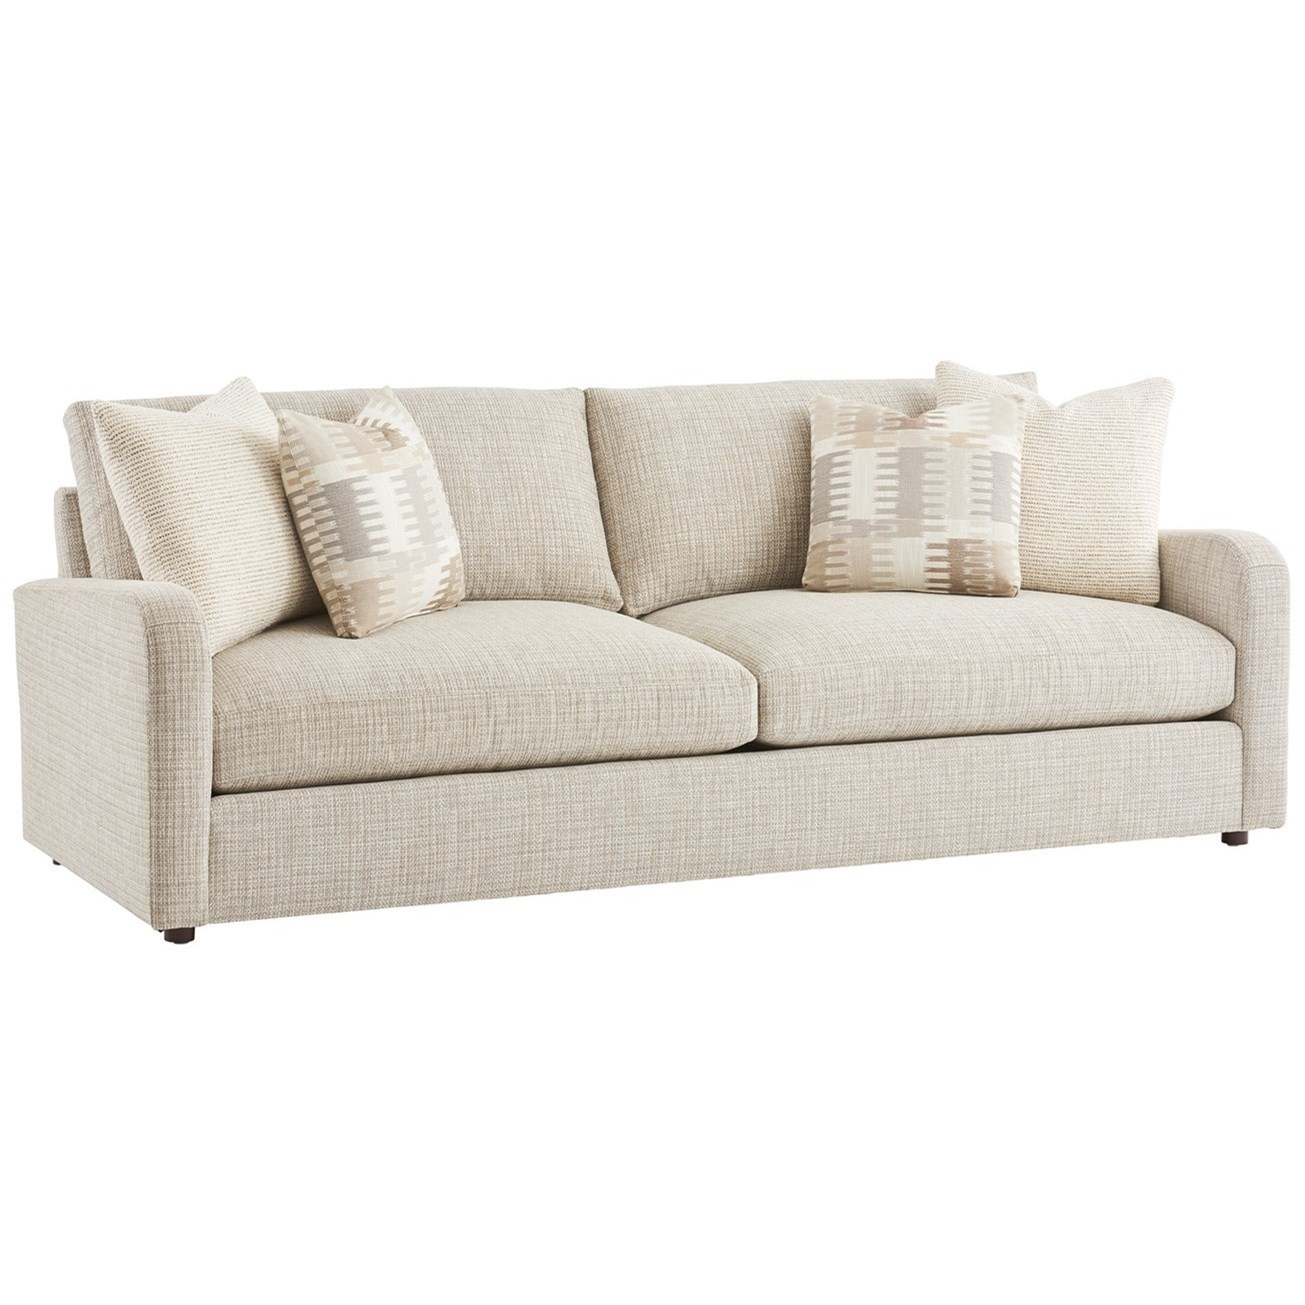 Barclay Butera Upholstery Grant Sofa by Barclay Butera at Baer's Furniture